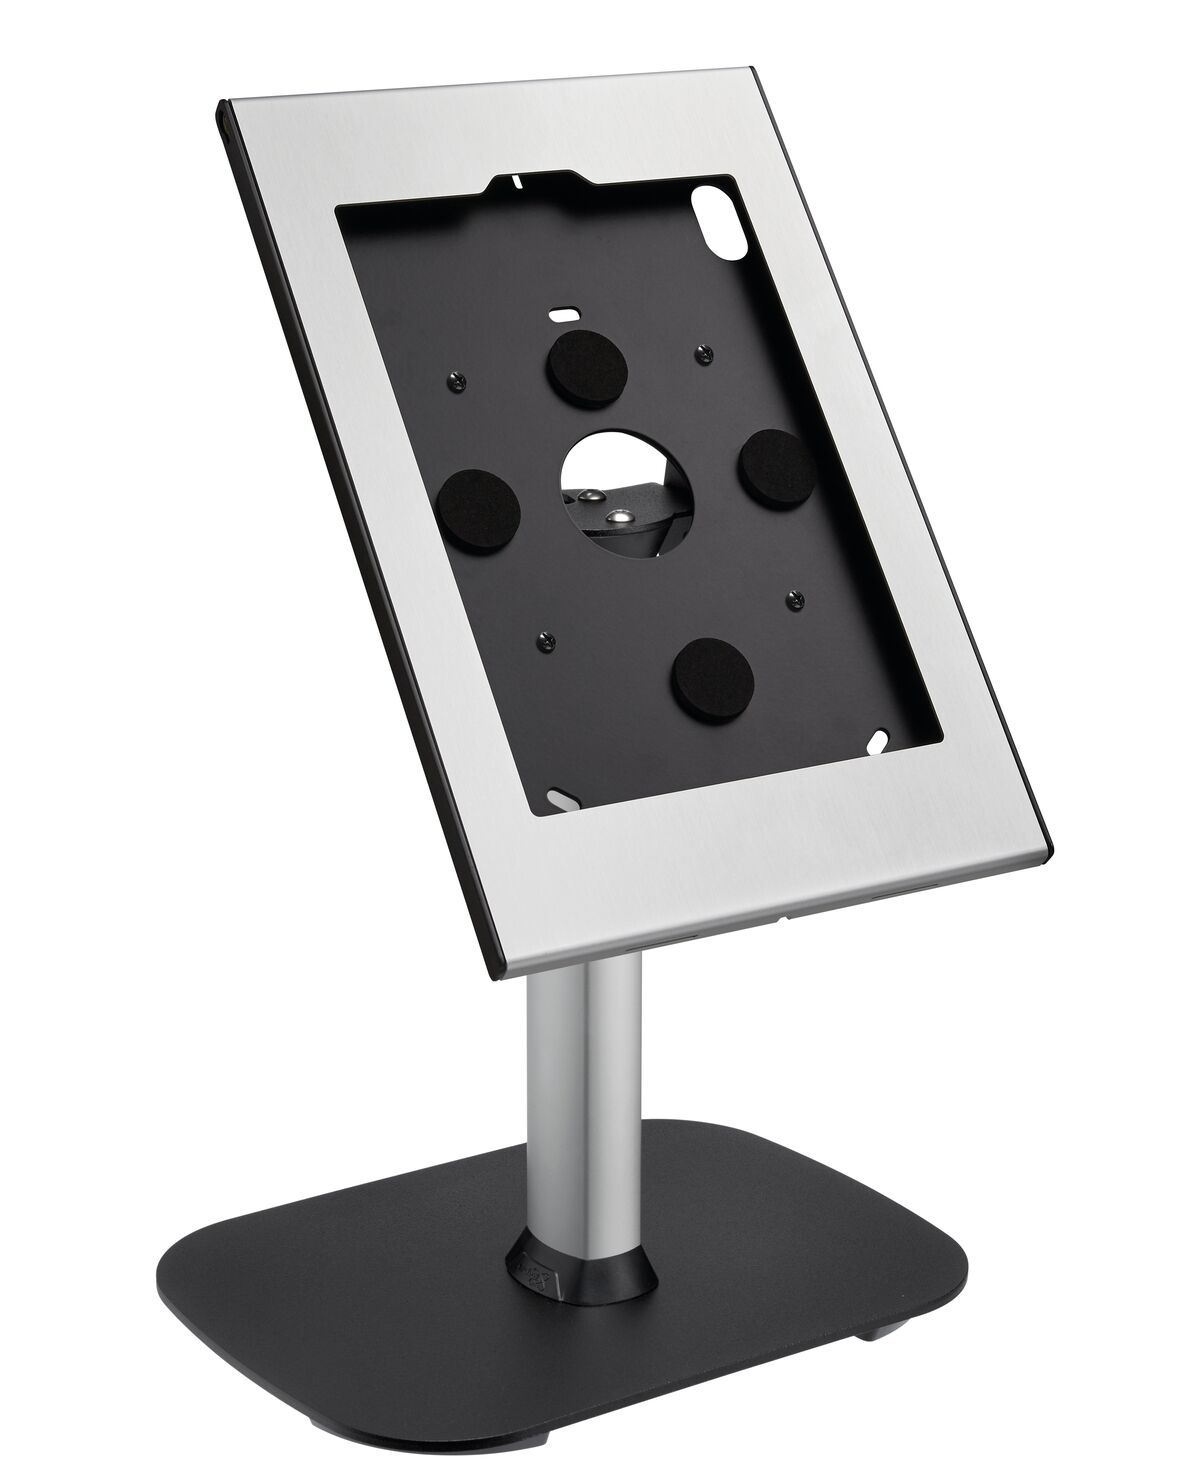 Vogel's PTS 1235 TabLock for Galaxy Tab S5e (2019) - Application